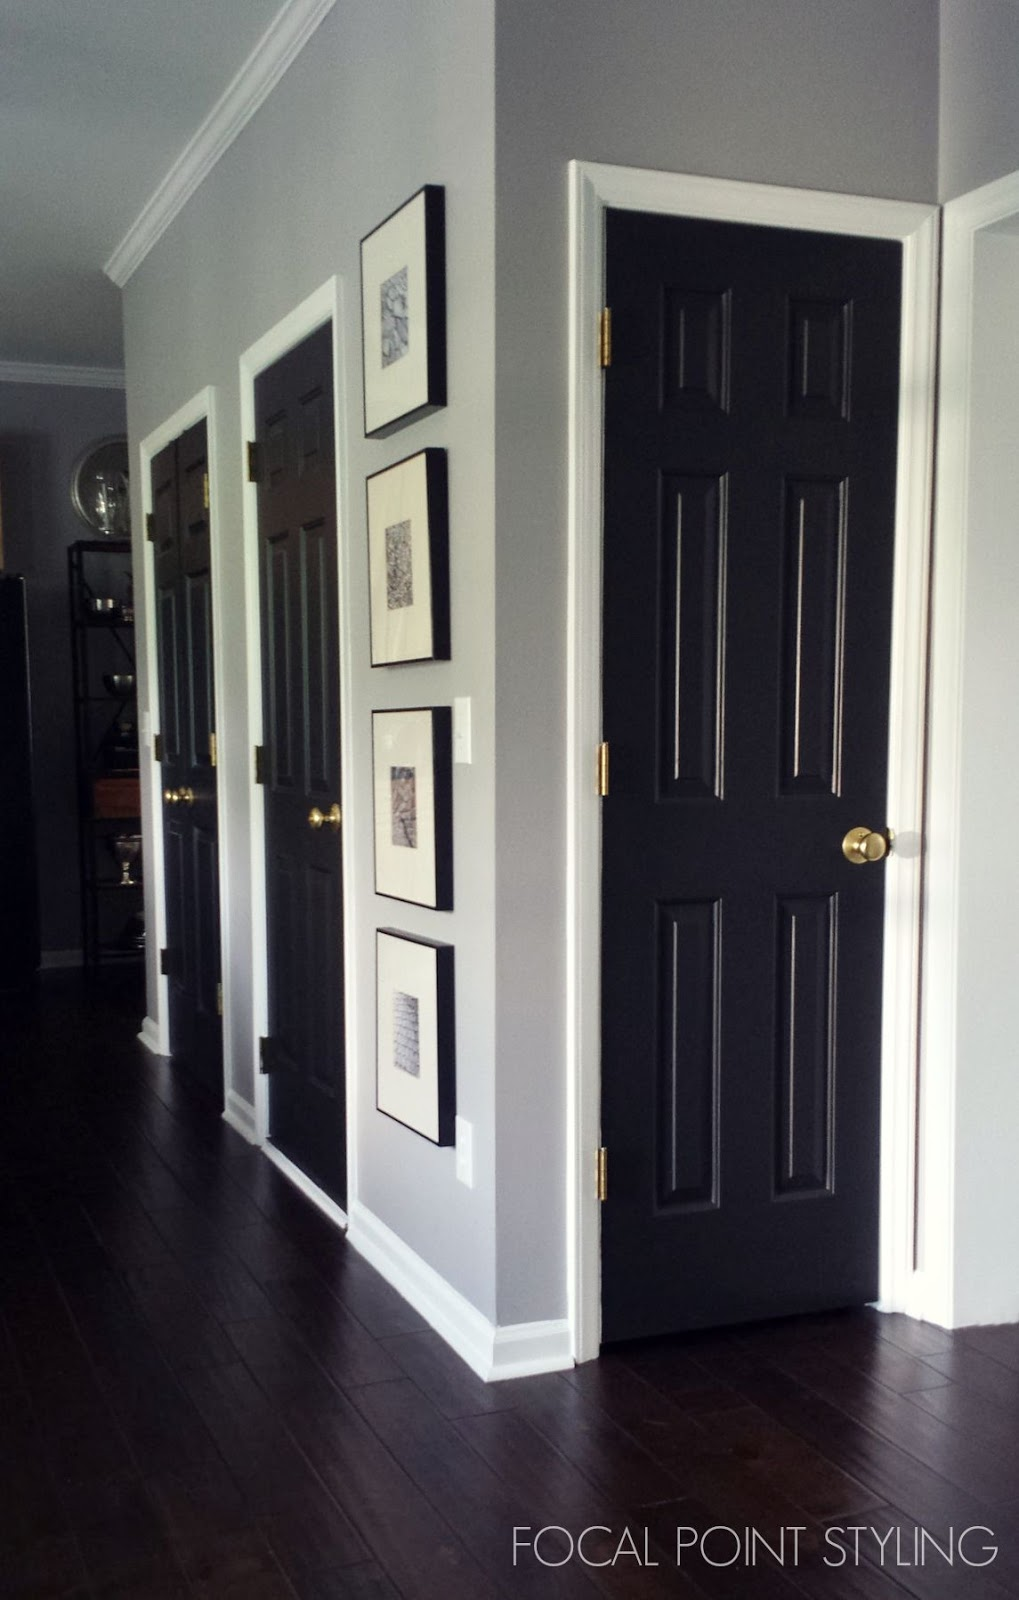 Focal point styling how to paint interior doors black update brass hardware - Sophisticated black interior doors ...